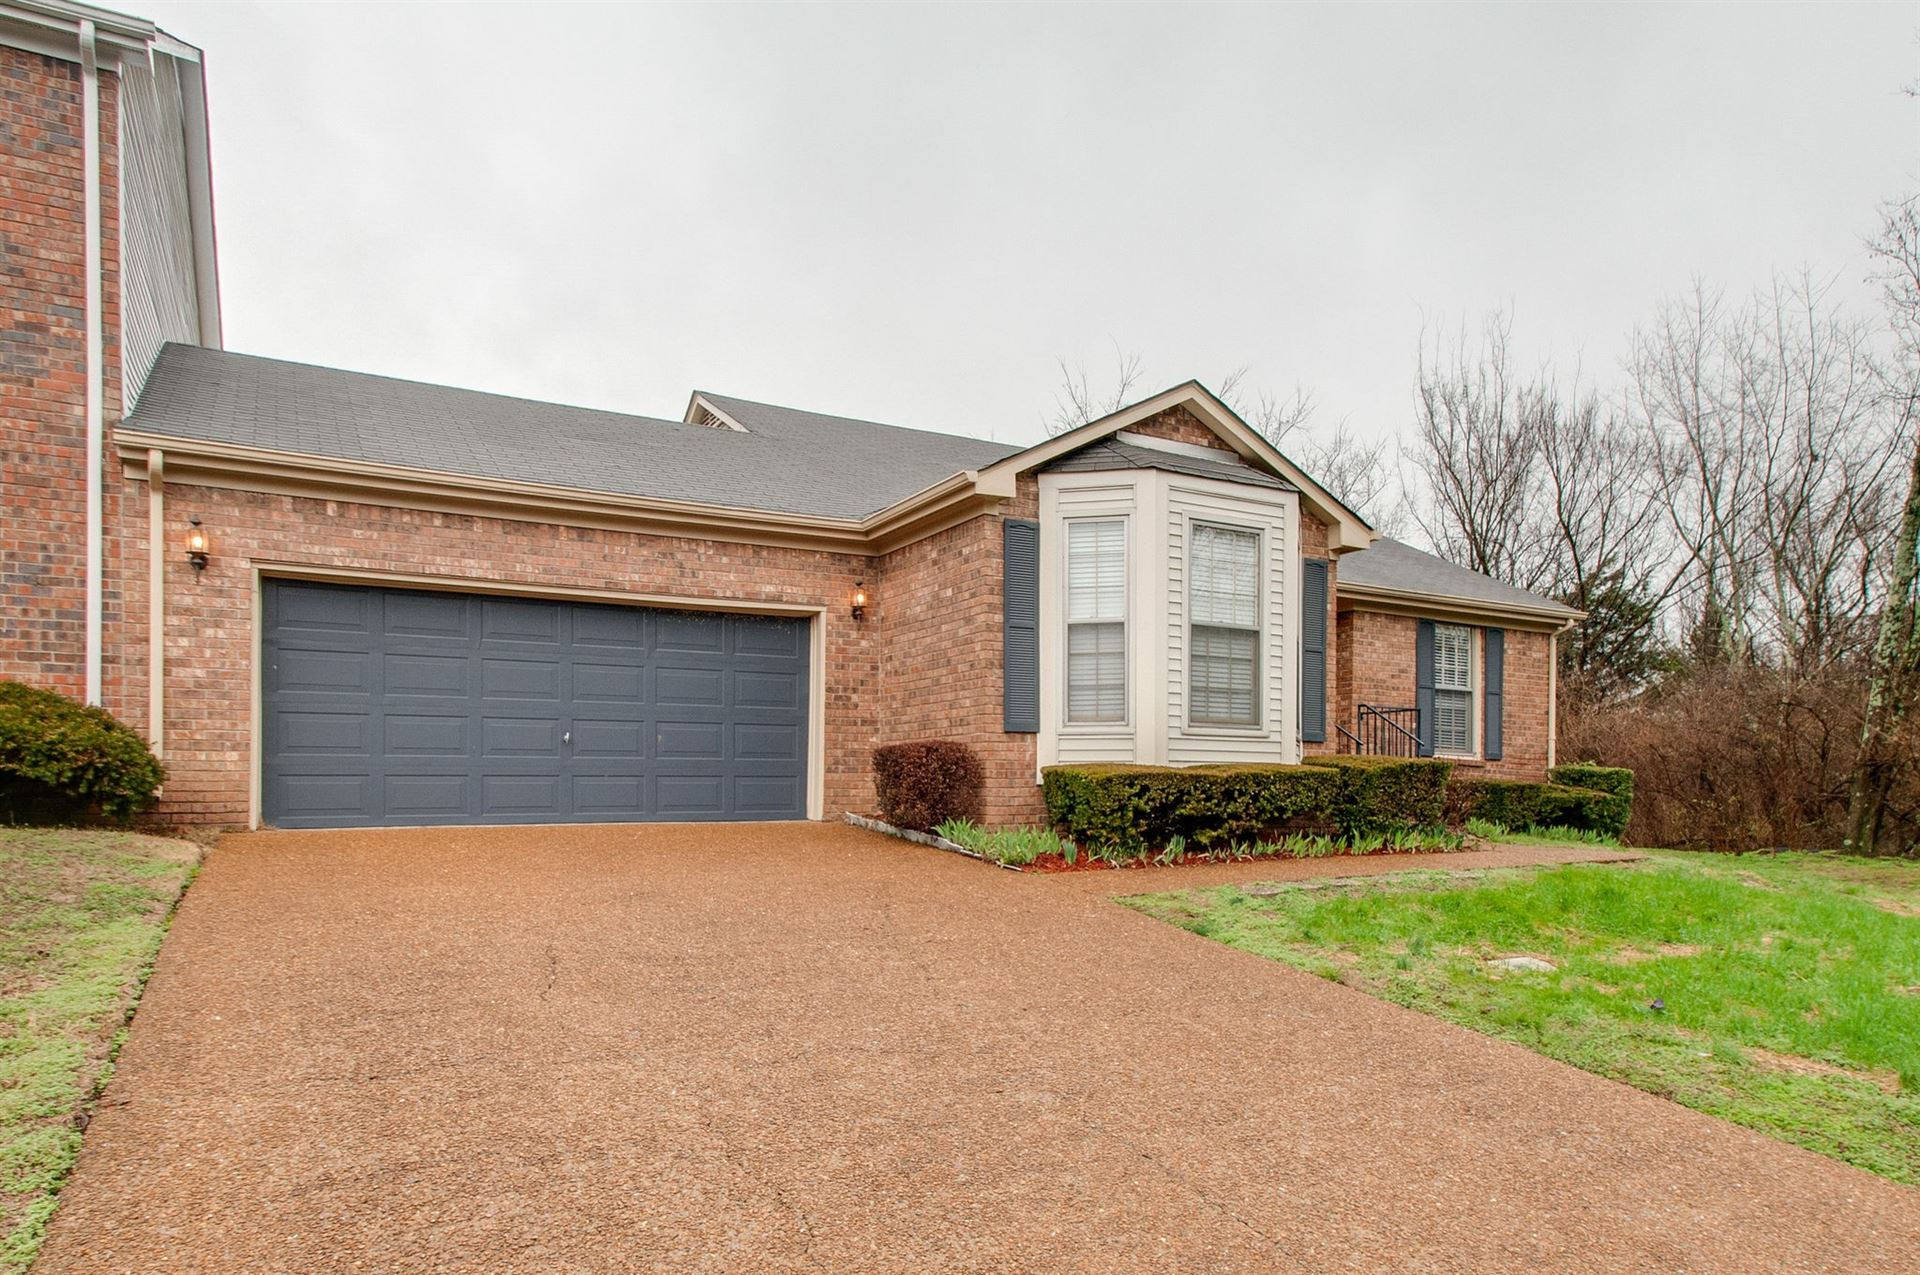 Photo of 7150 Lakeview Ct, Brentwood, TN 37027 (MLS # 2122814)